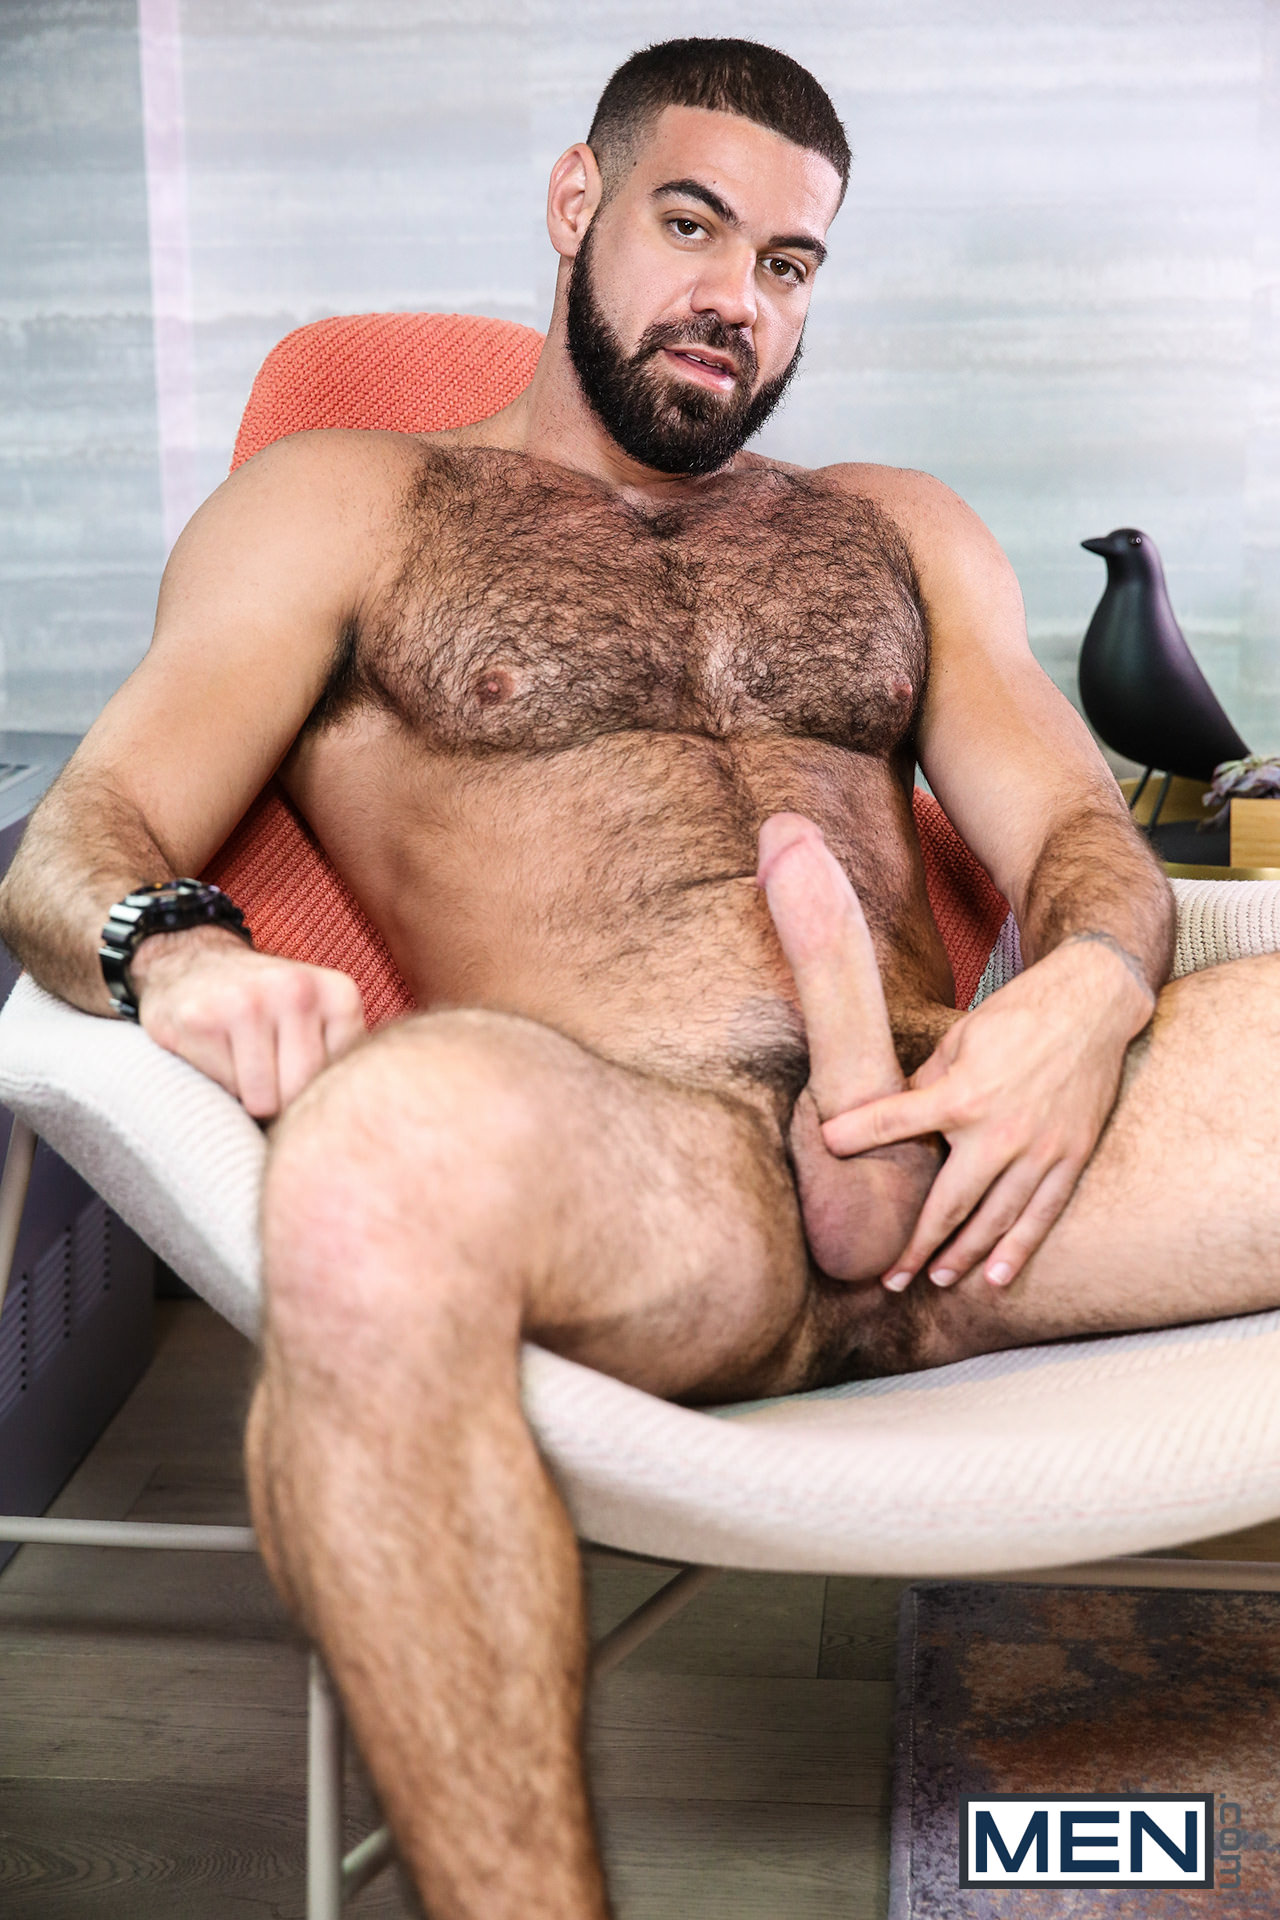 Pussy Perfect nude hairy men Jesus christ